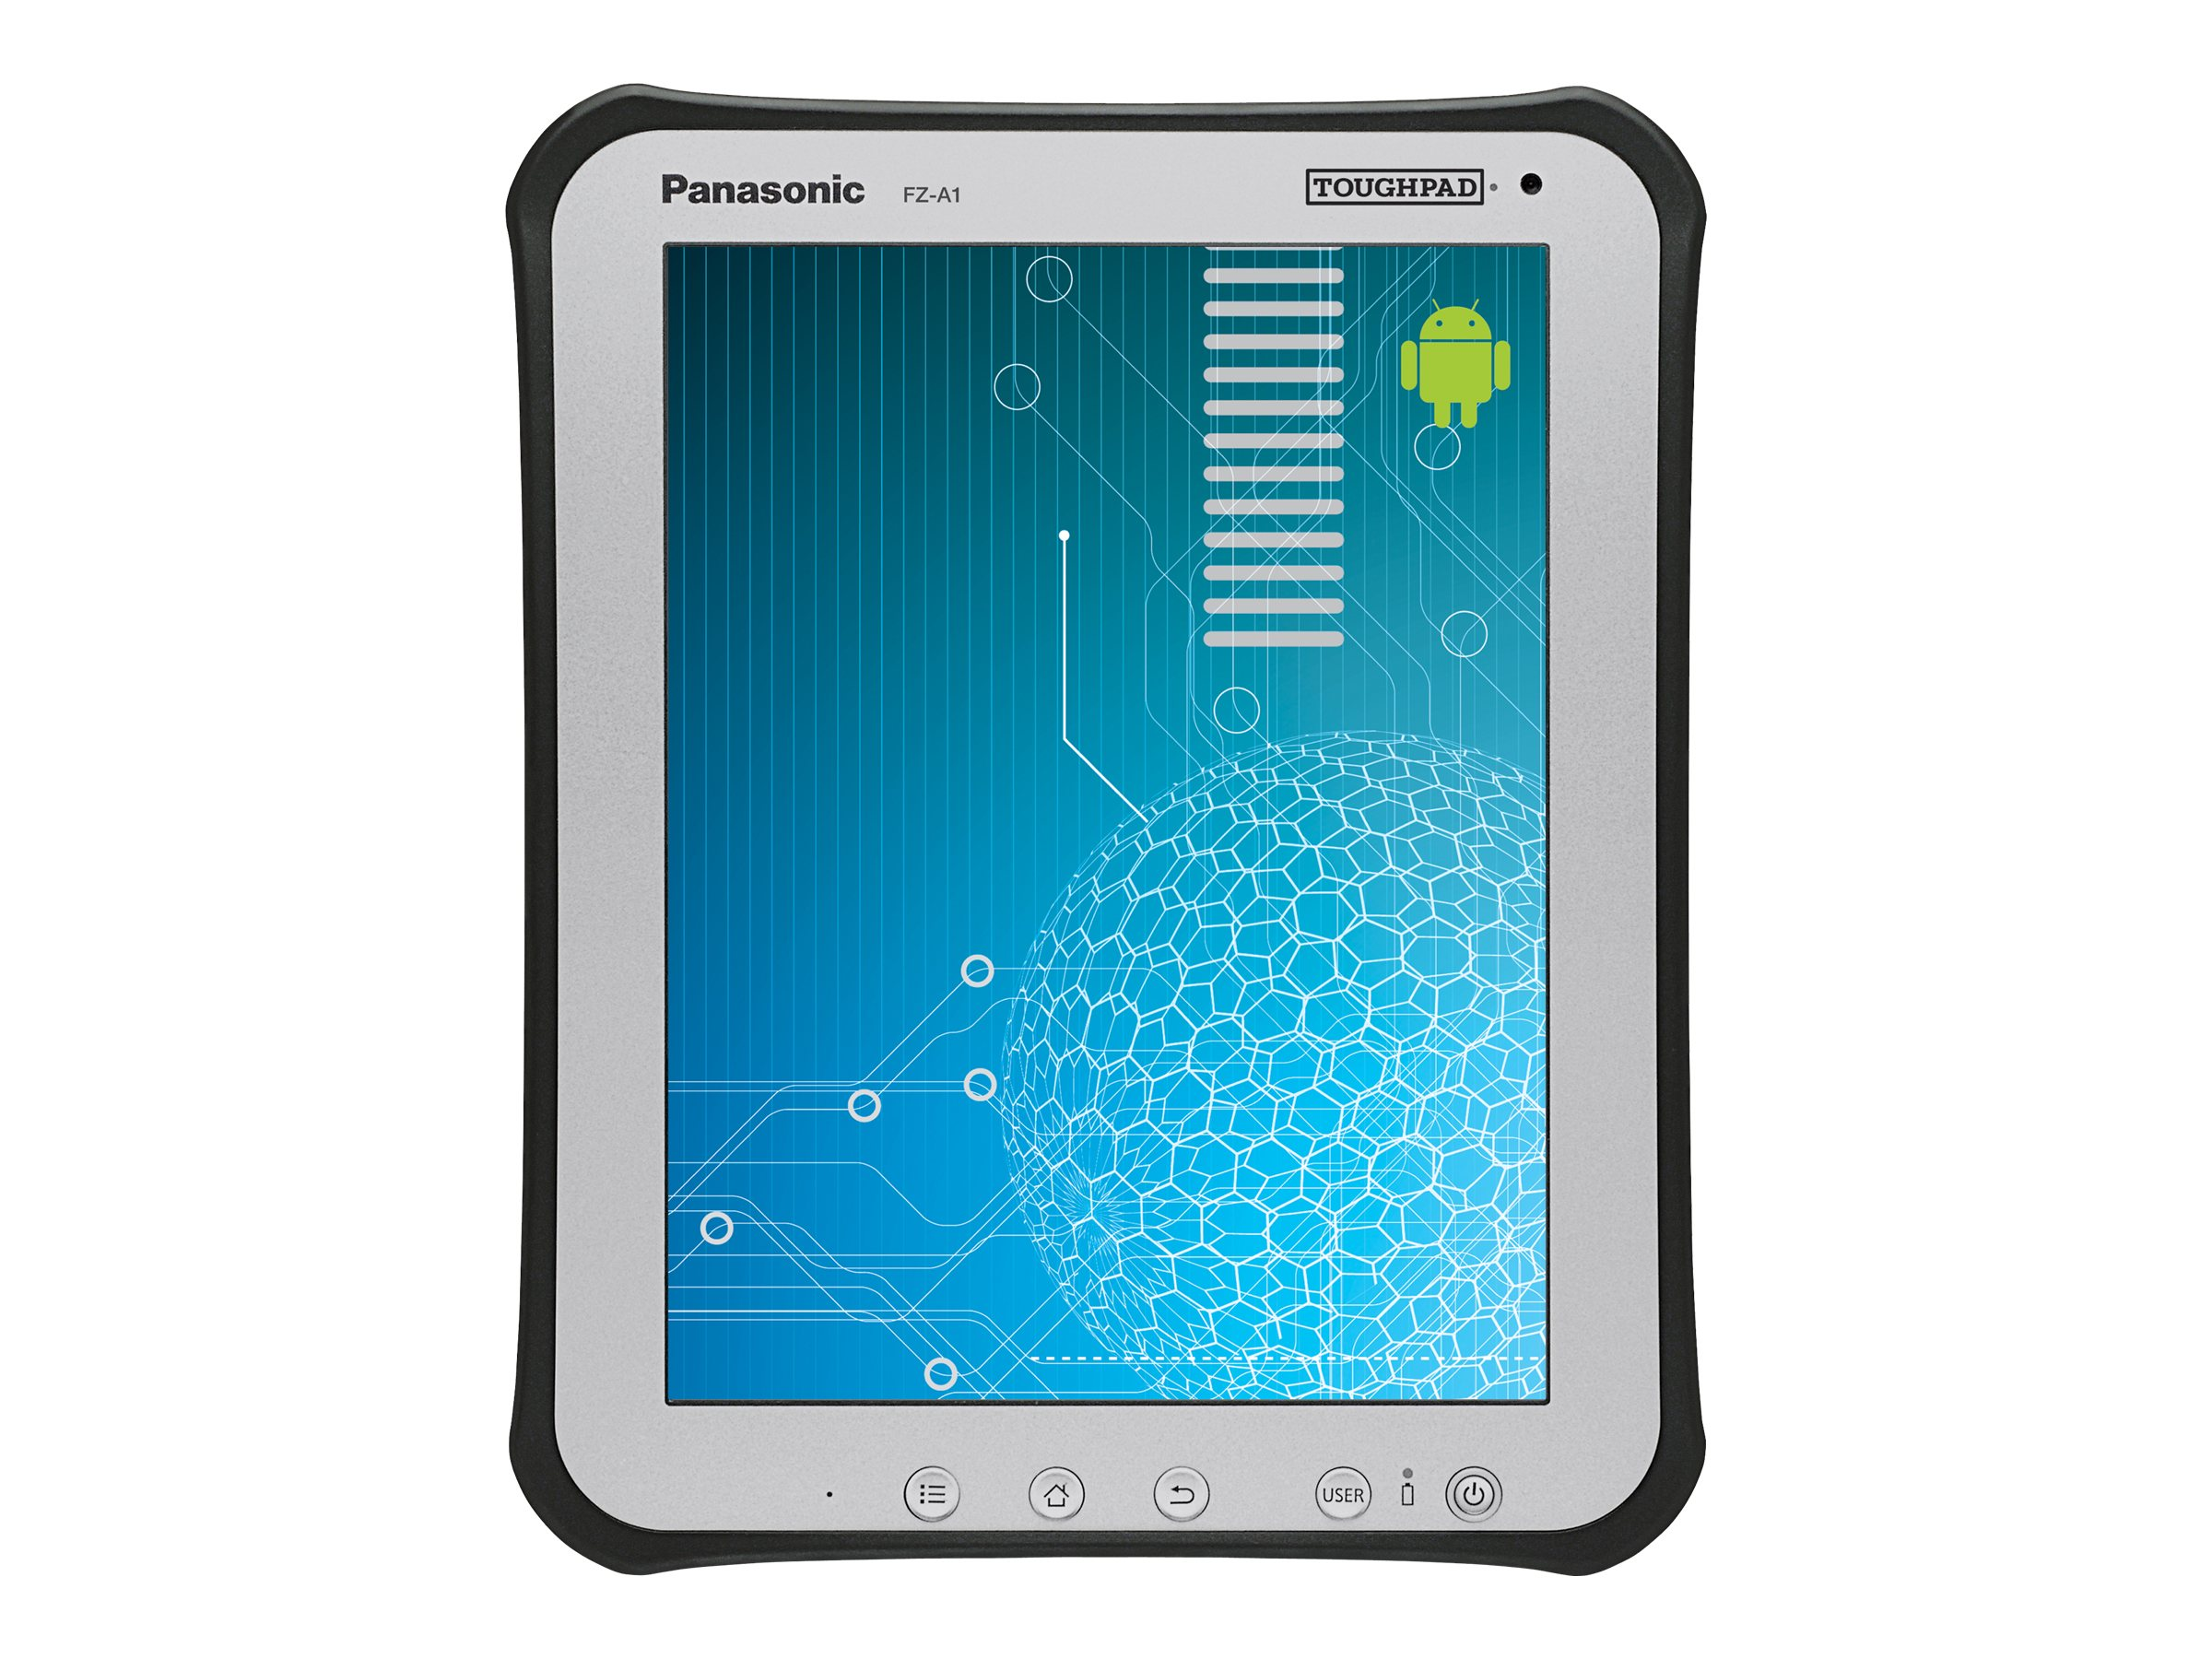 Panasonic Toughpad FZ-A1 ARM 1.2GH 1GB 16GB WLS Verizon 4G 10.1 MT Android 4.0, FZ-A1BDAAV1M, 13551696, Tablets